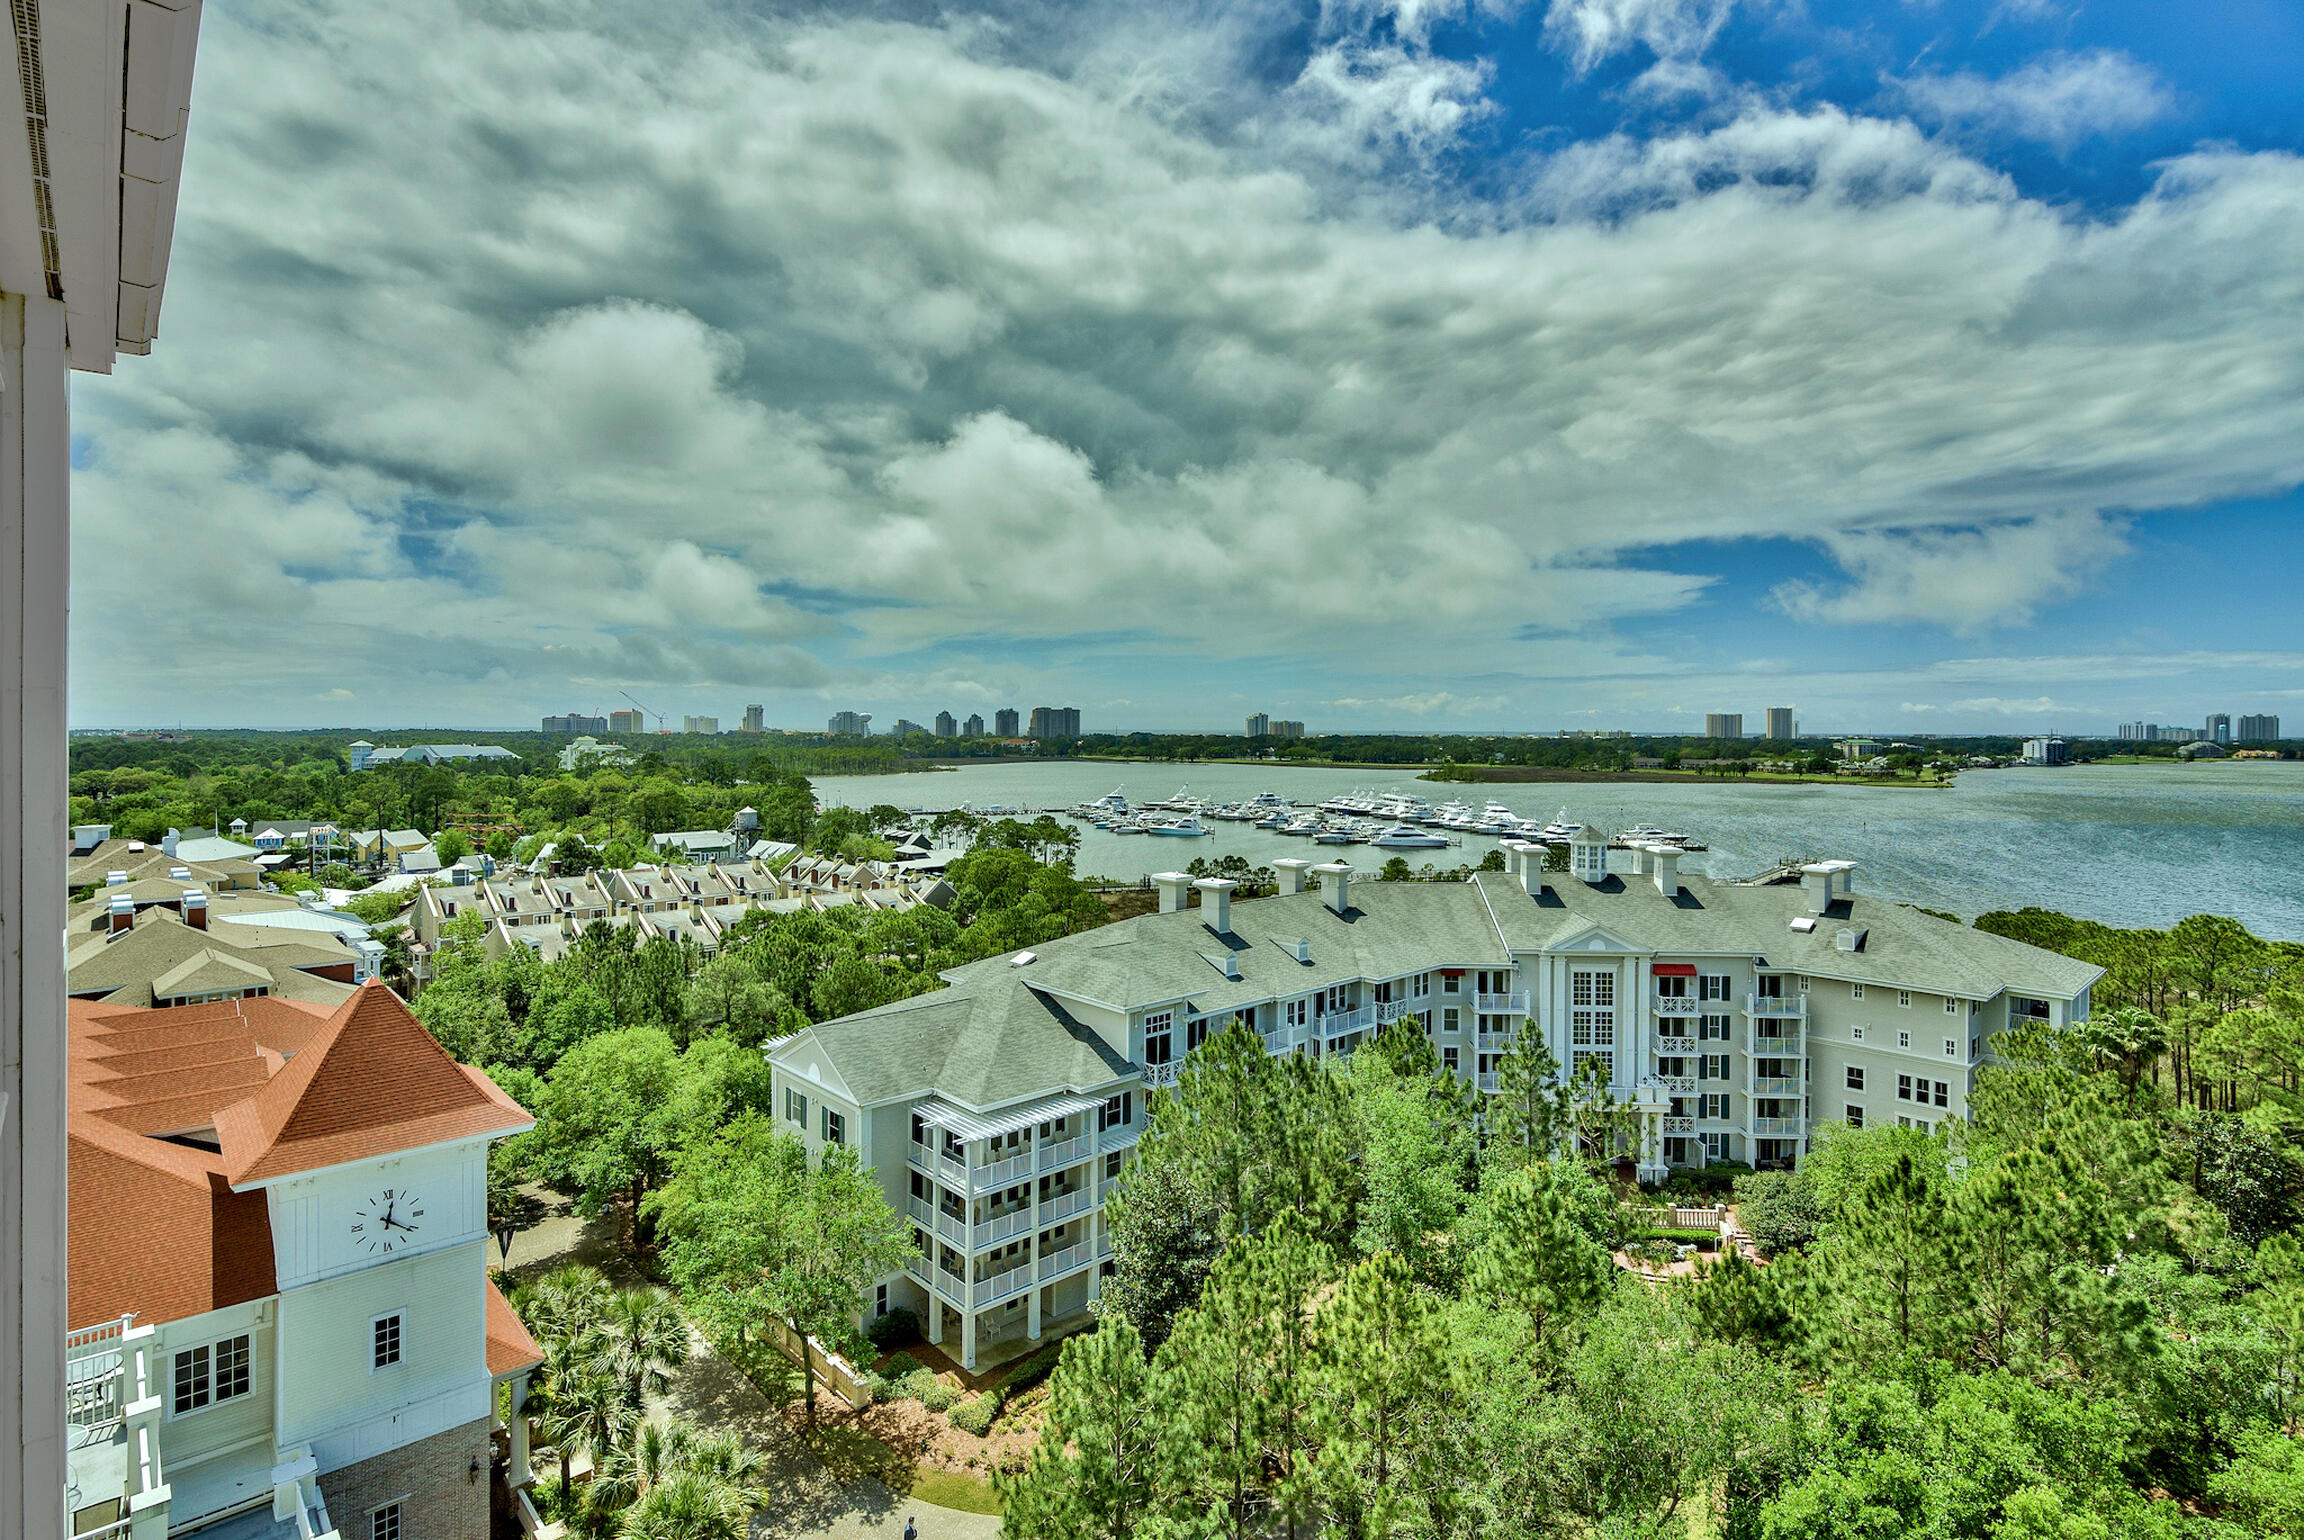 3 Bedroom Penthouse! Updated and turn key ready. Boasting magnificent views of the Choctawhatchee Ba